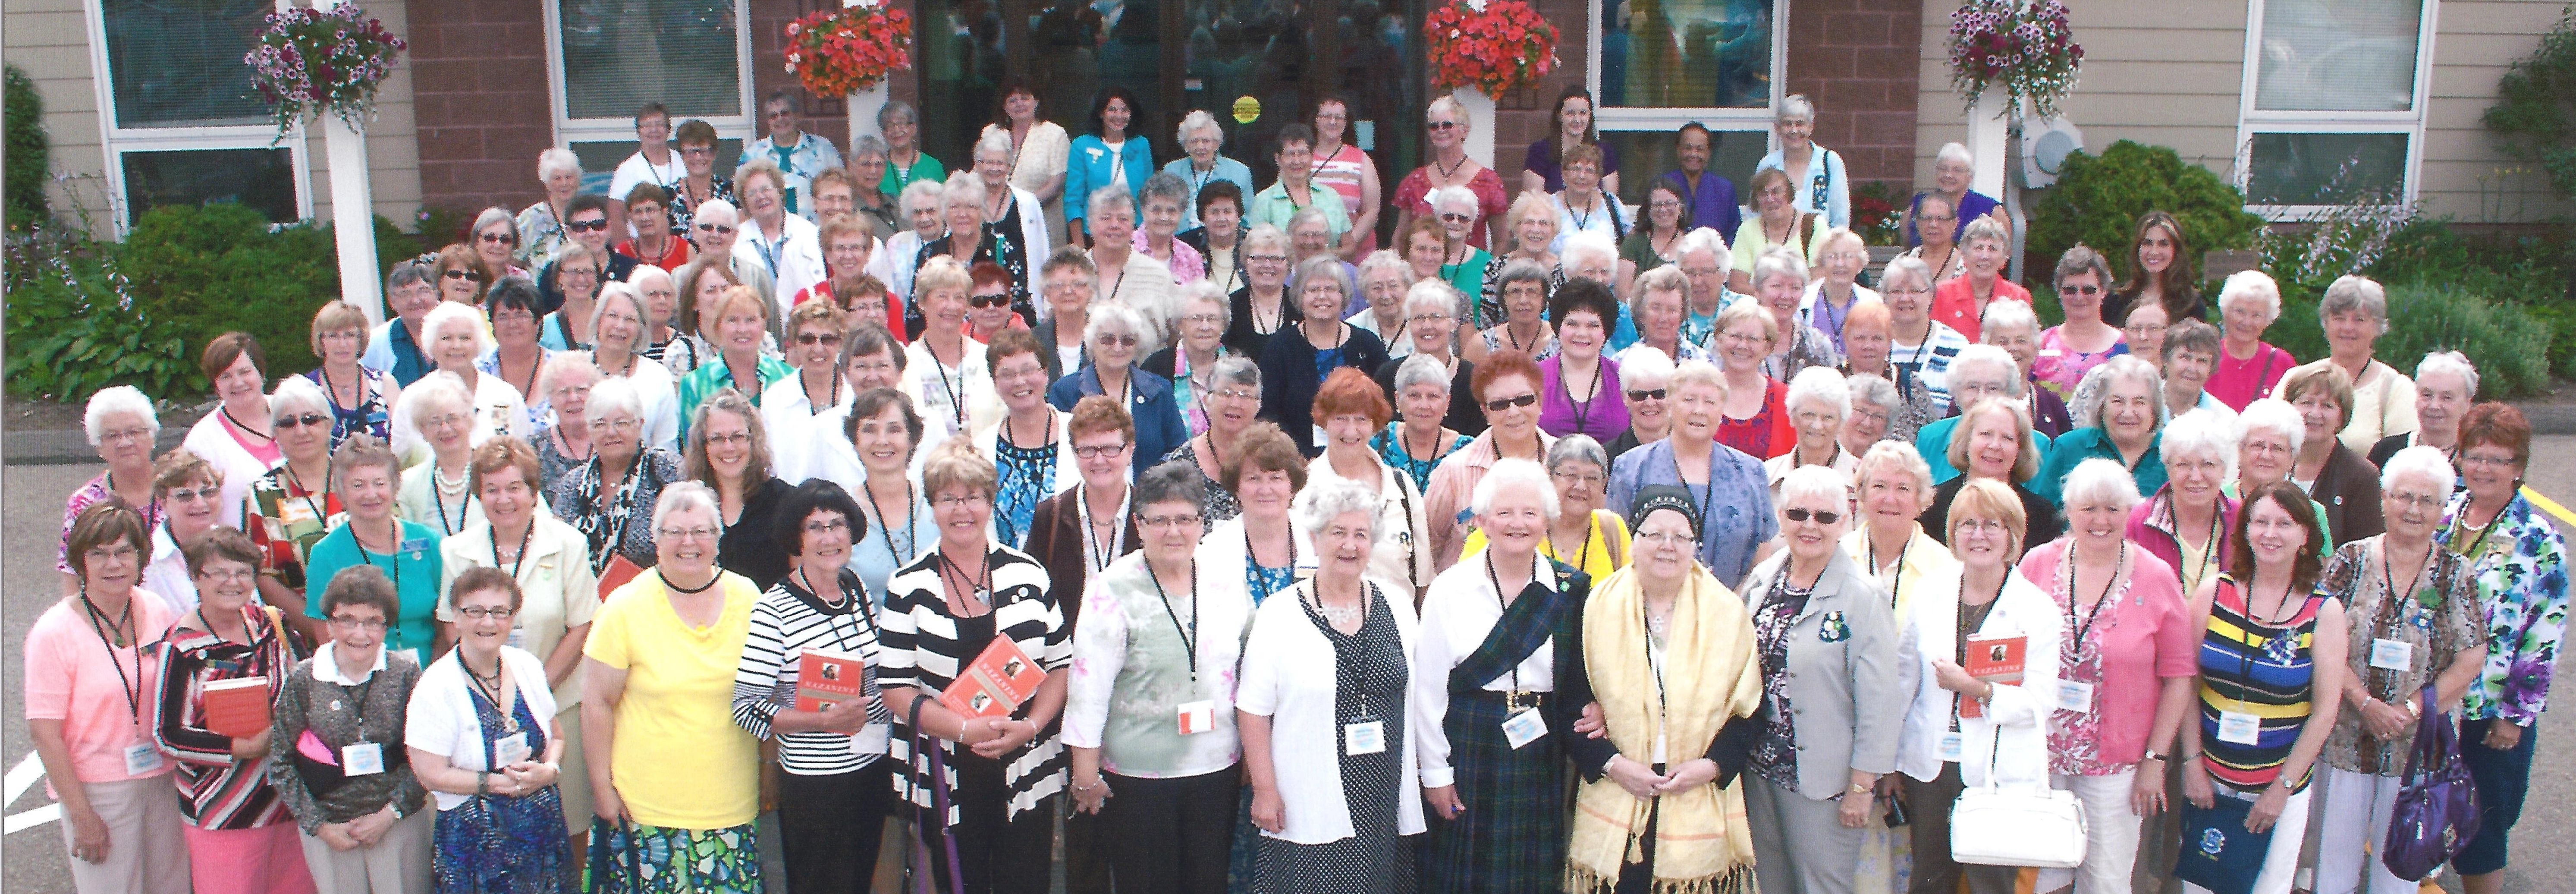 100th anniversary group photo cropped